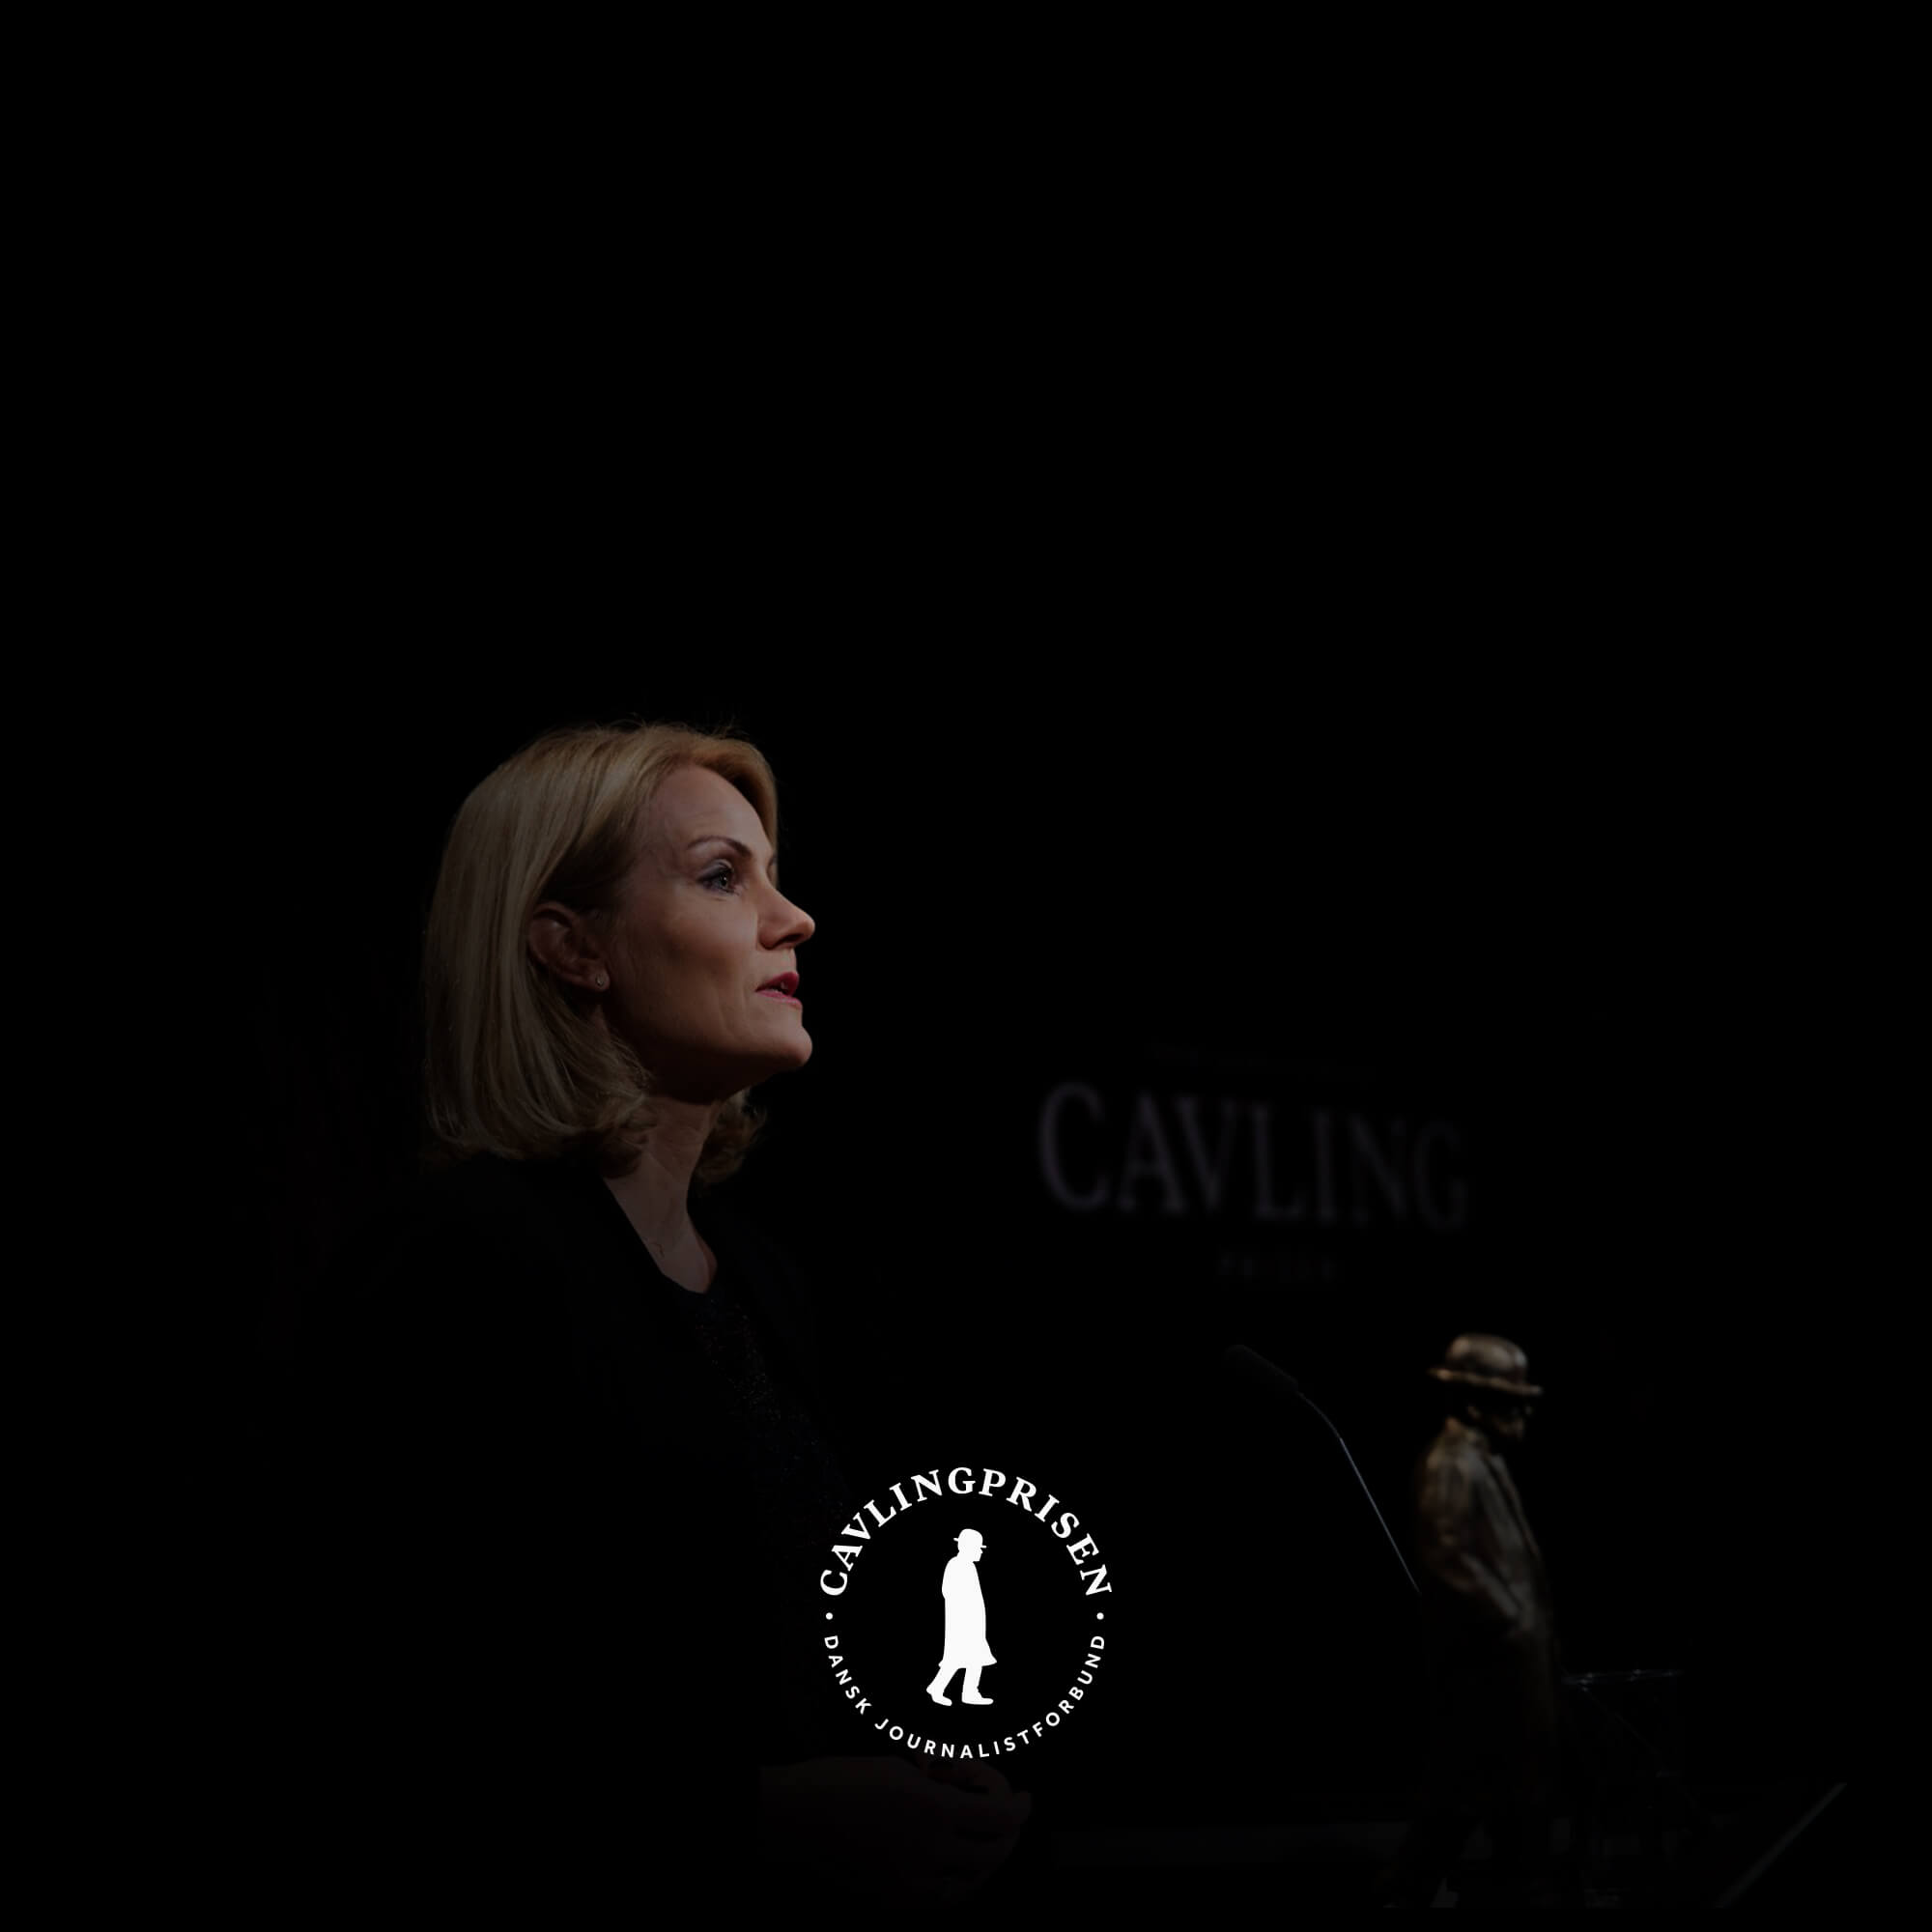 andreas_weiland_cavling_prisen_helle_thorning